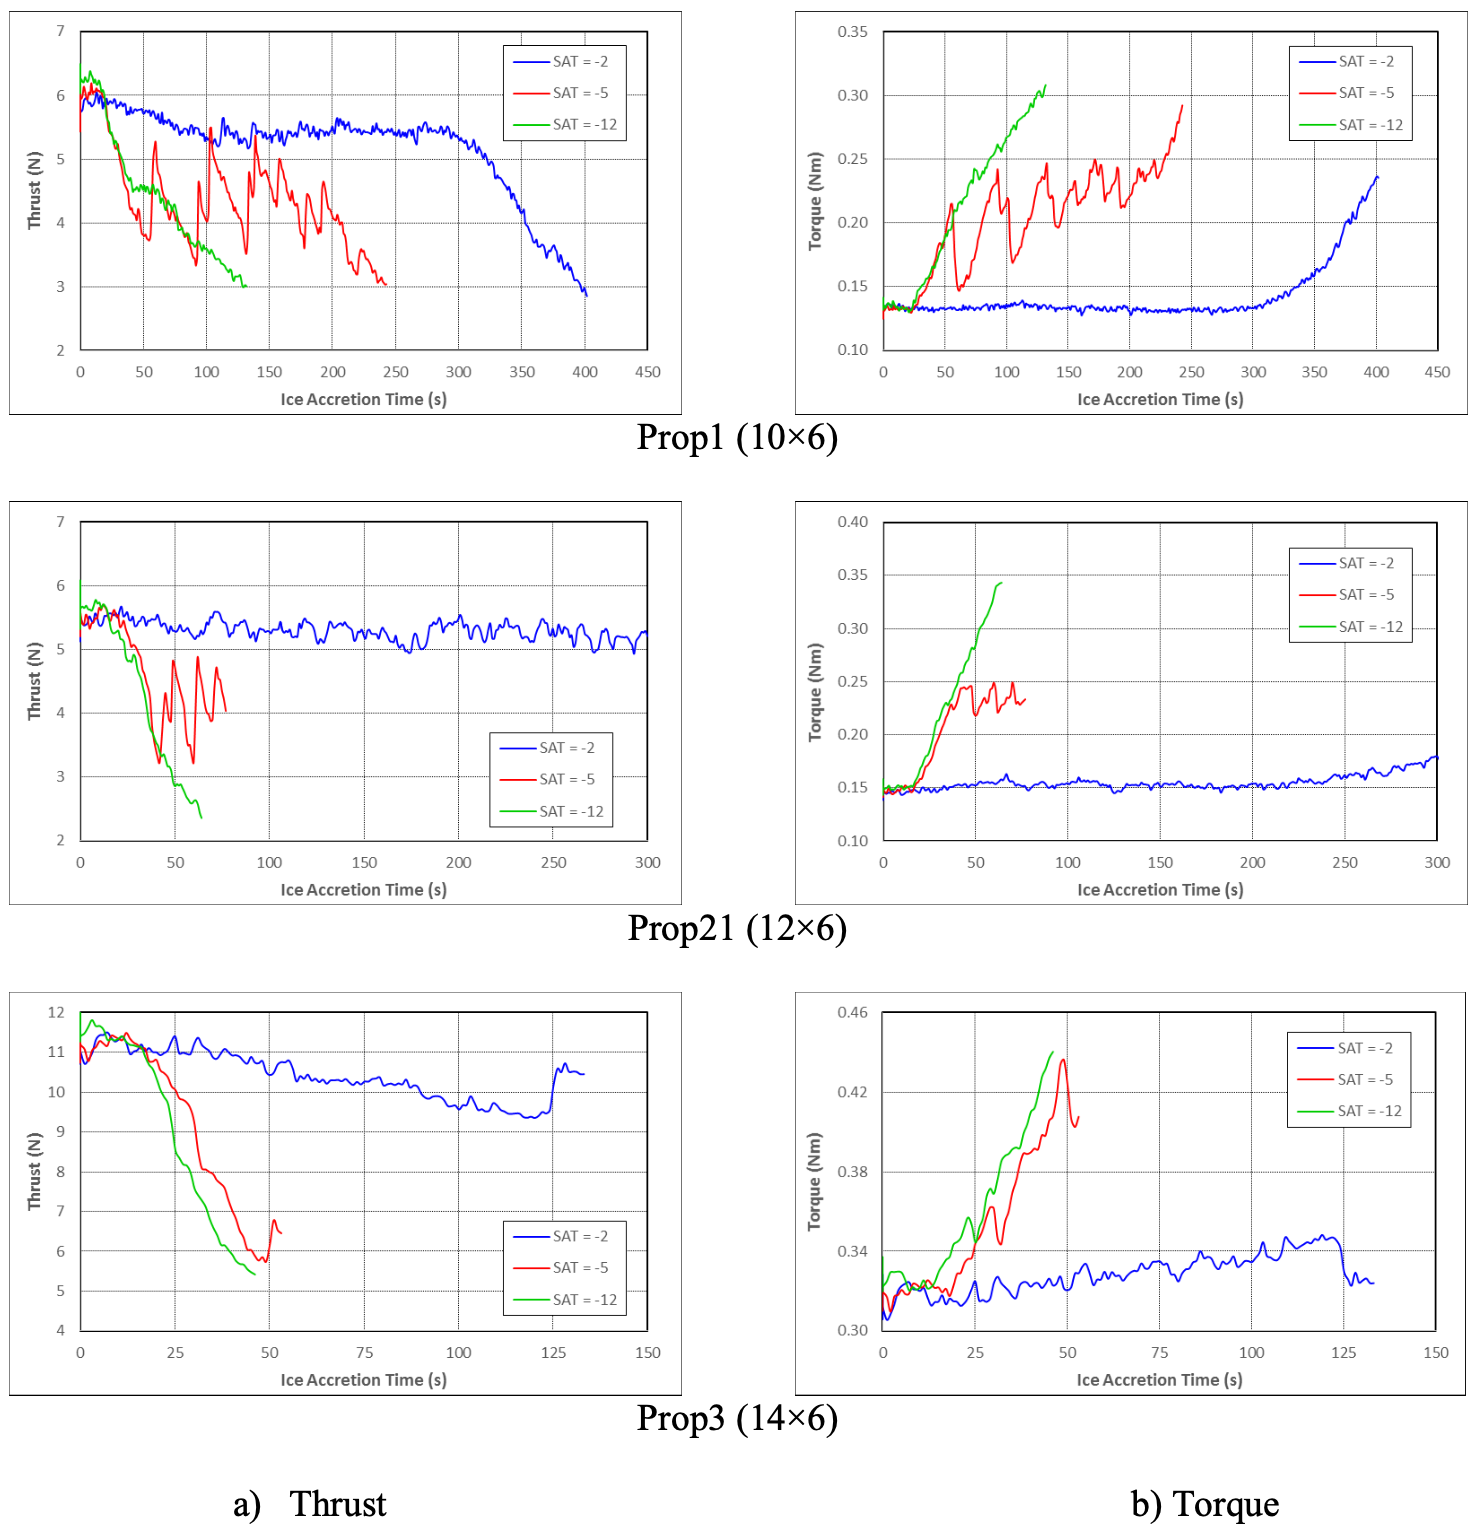 Thrust and torque trends for different SAT values